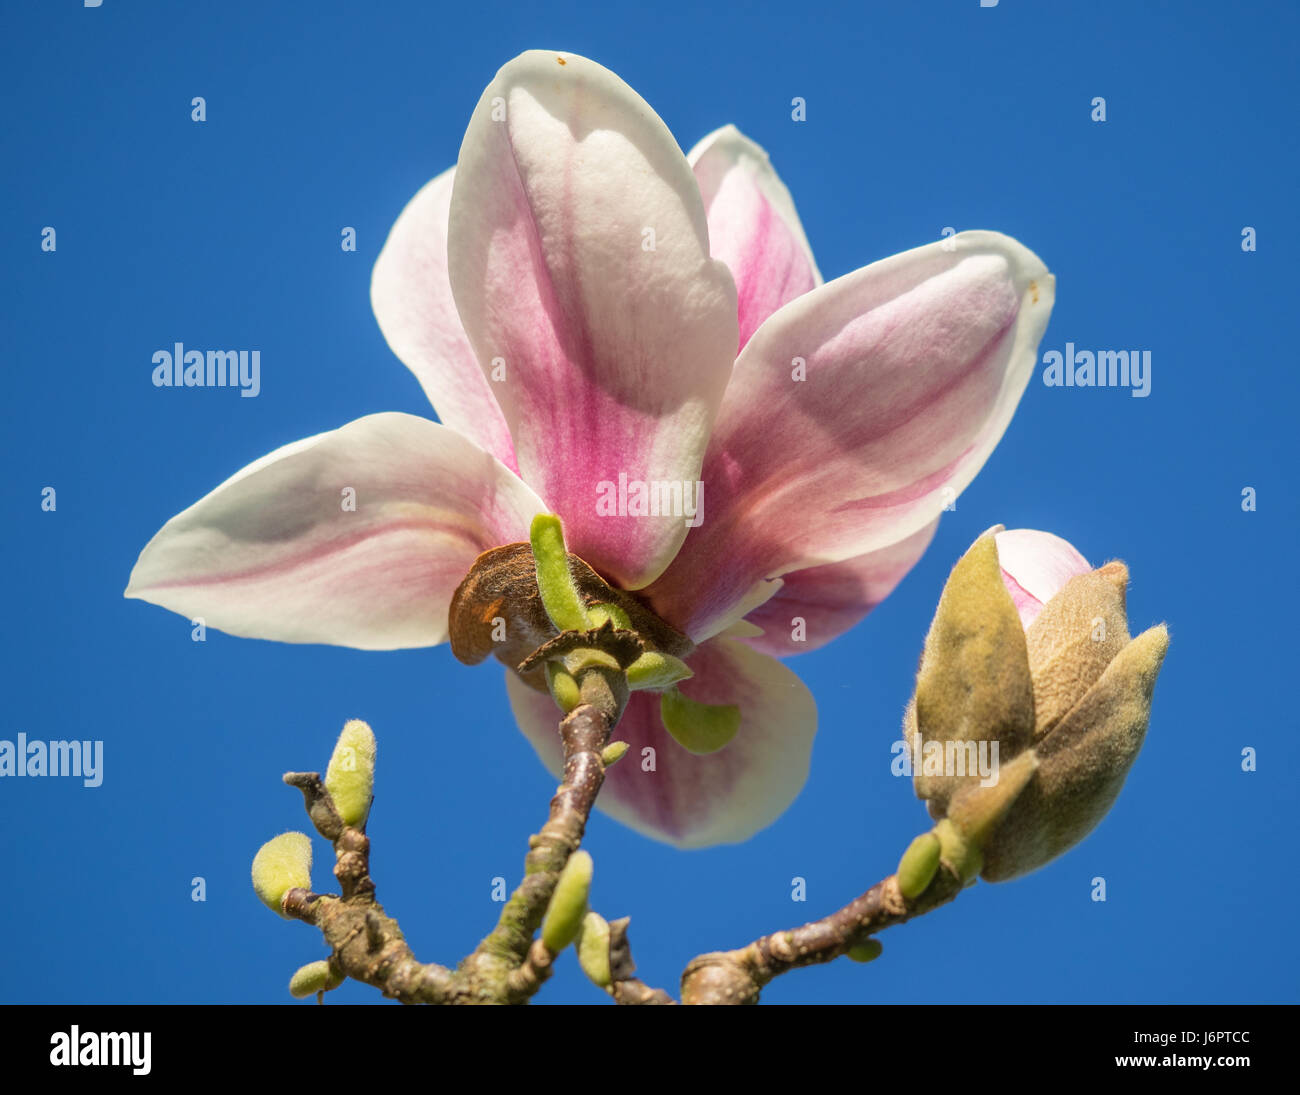 a close up of three 3 white with pink centre center Magnolia bloom blossoming on a branch with bud buds, against Stock Photo